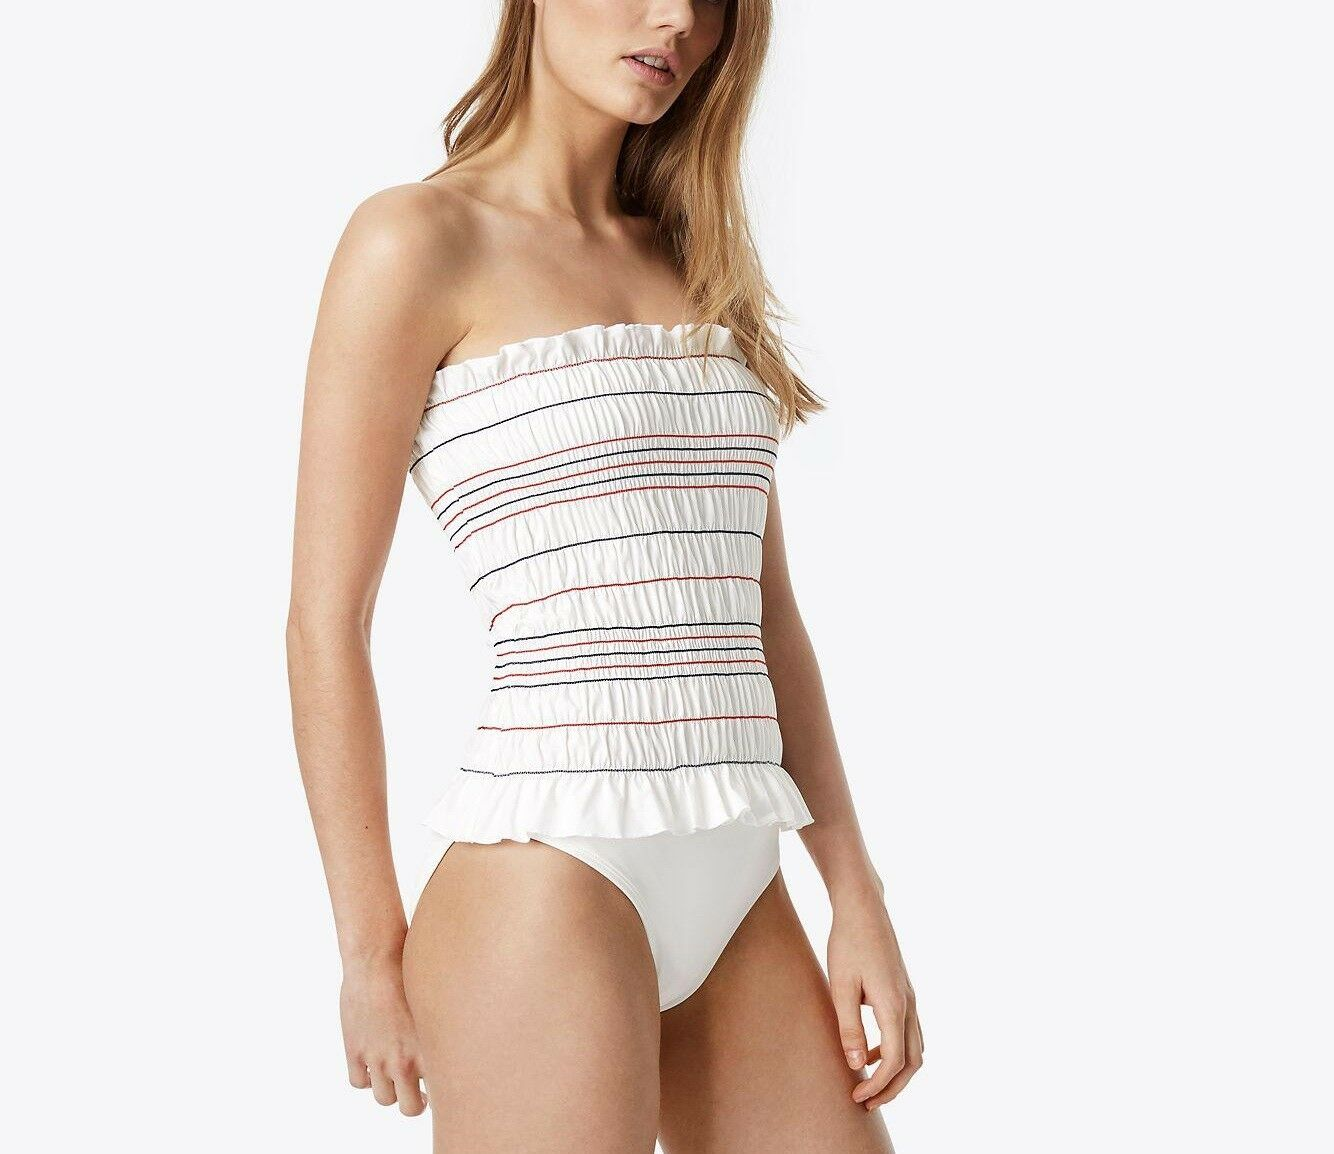 Tory Burch White Costa One Piece Swimsuit